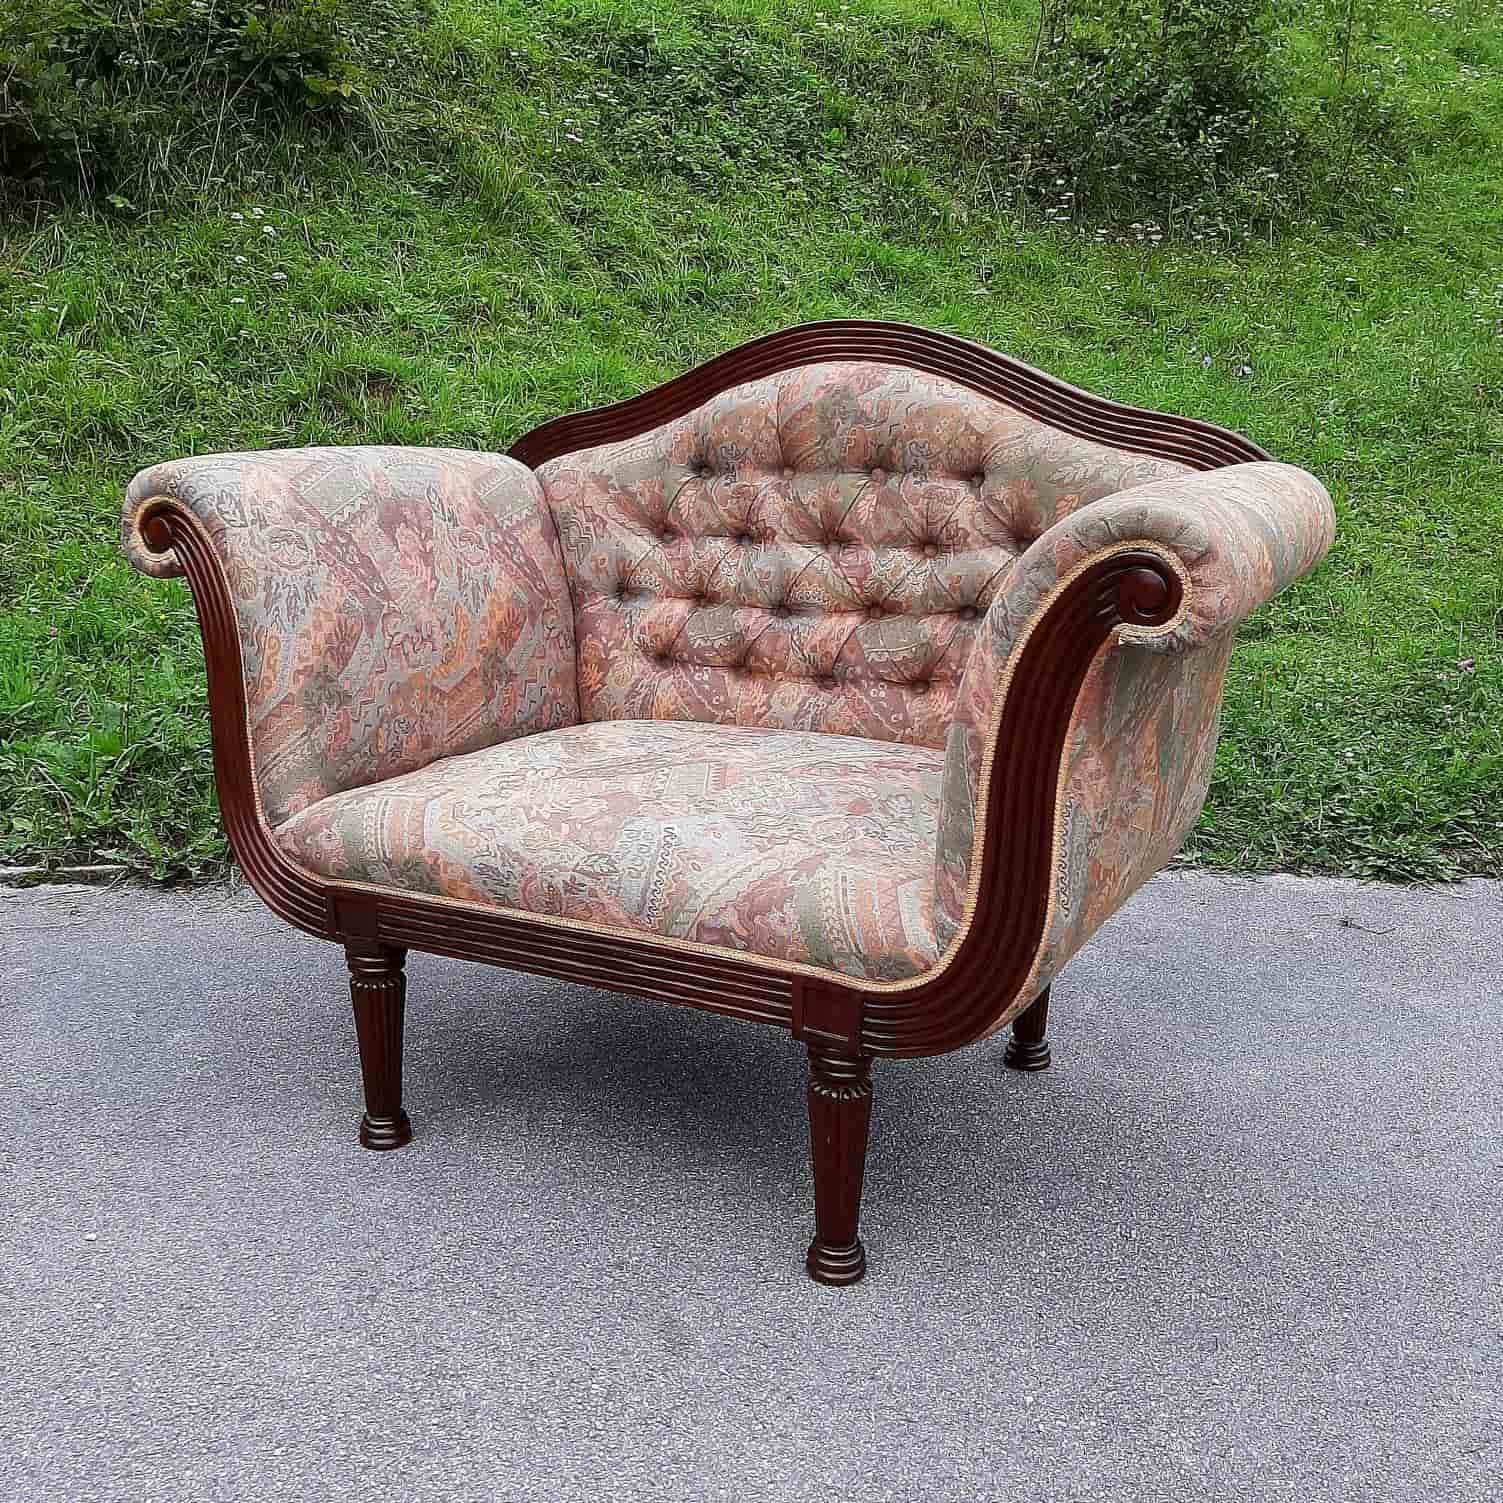 Elegant old armchair